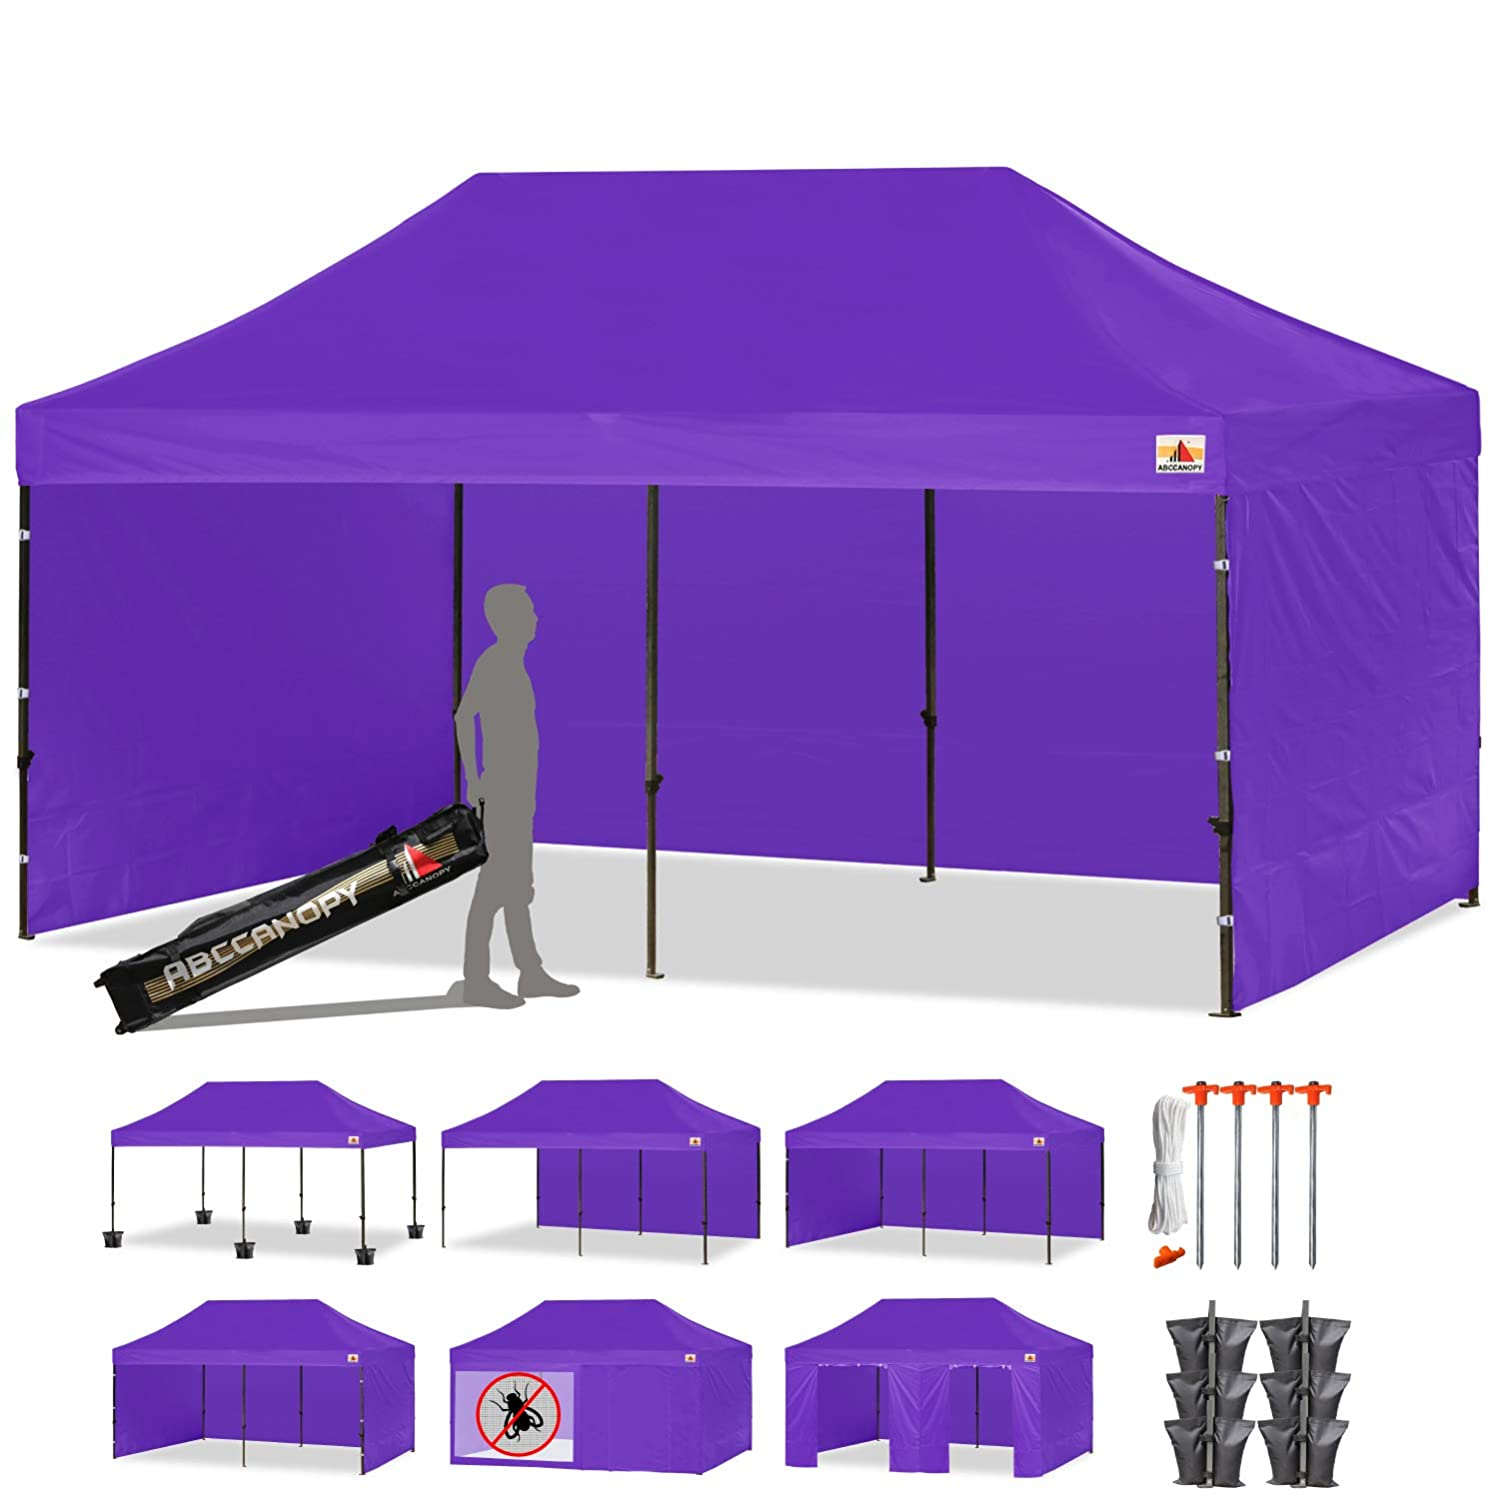 sale retailer f38ec 3cbc8 ABCCANOPY 10x20 Commercial Pop up Canopy Tent Instant Gazebos with 9  Removable Sides and Roller Bag and 6 Weight Bags (Purple)